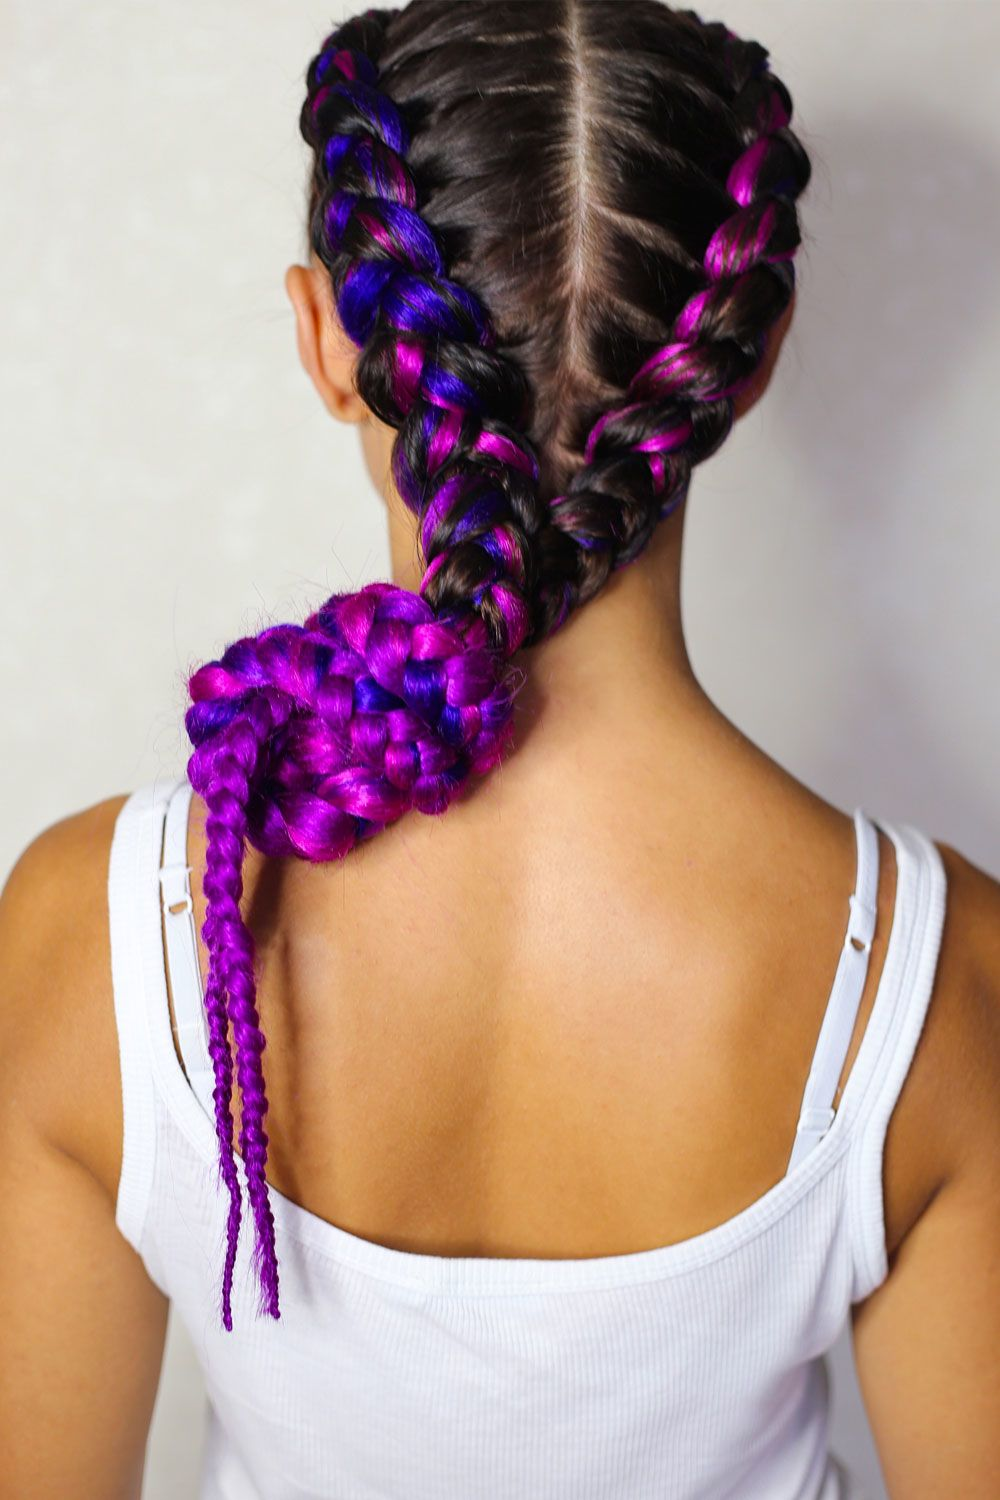 Knotted Two Braids With Kanekalon